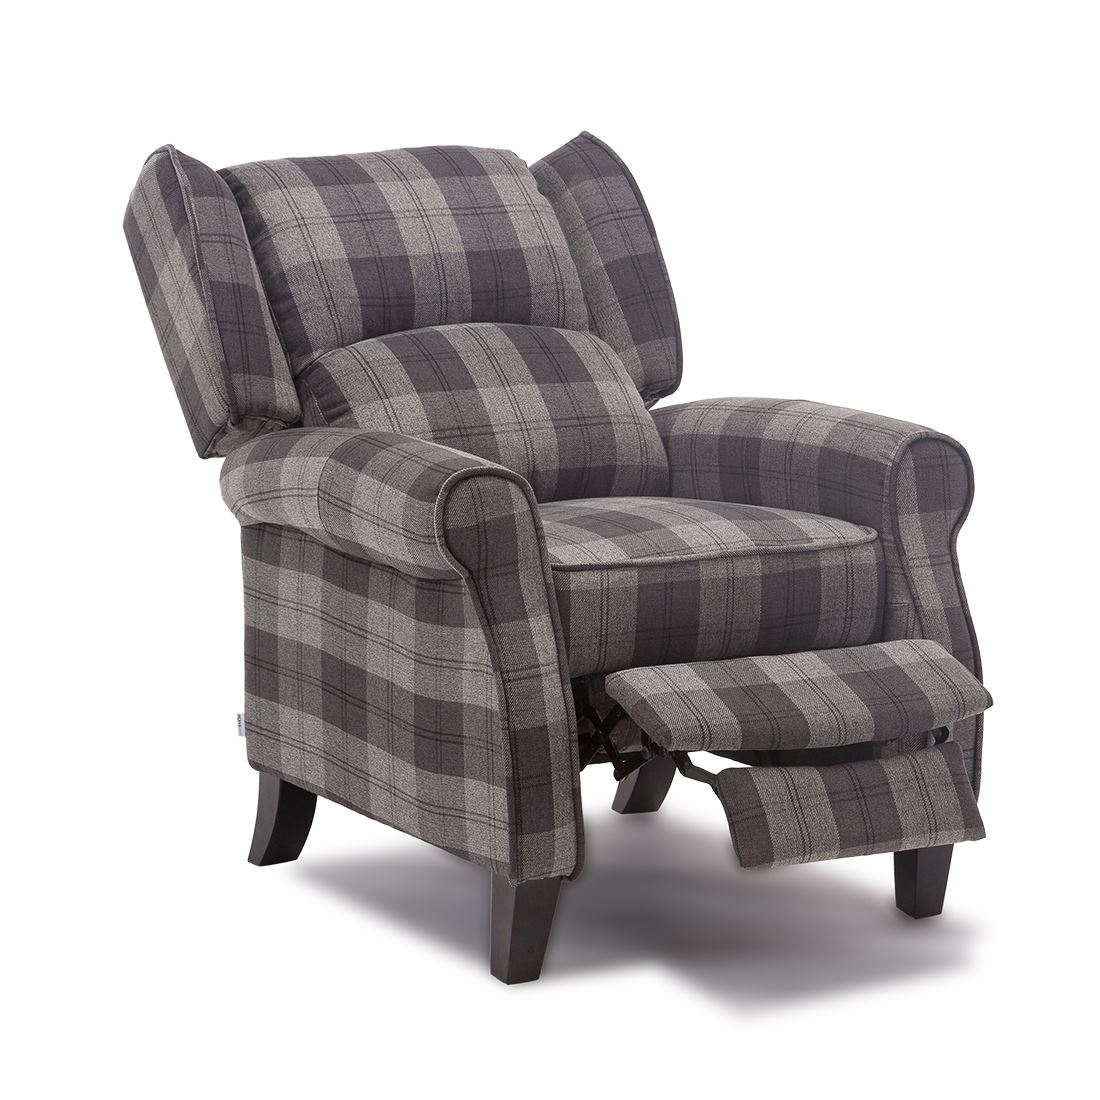 EATON WING BACK FIRESIDE CHECK FABRIC RECLINER ARMCHAIR ...